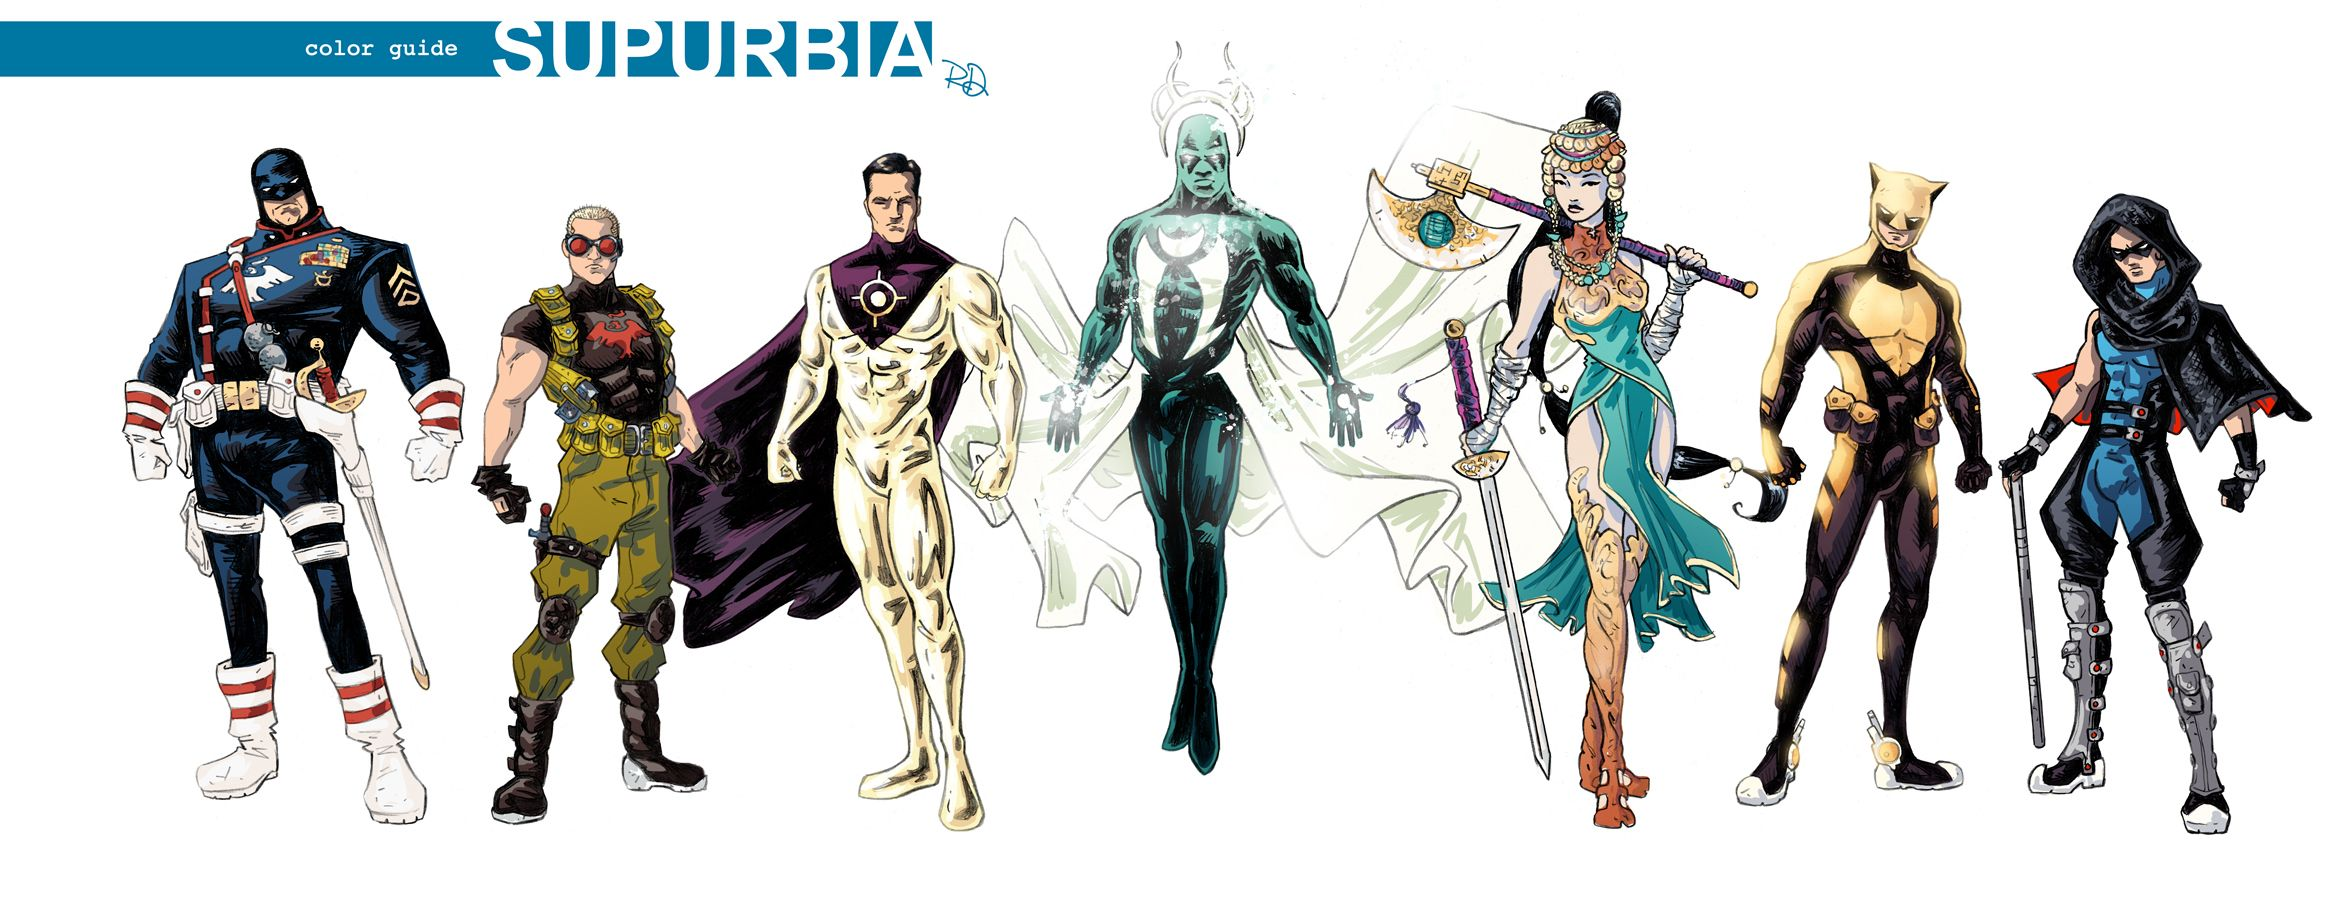 Superhero Character Design Ideas : Supurbia character designs superhero color guide v g